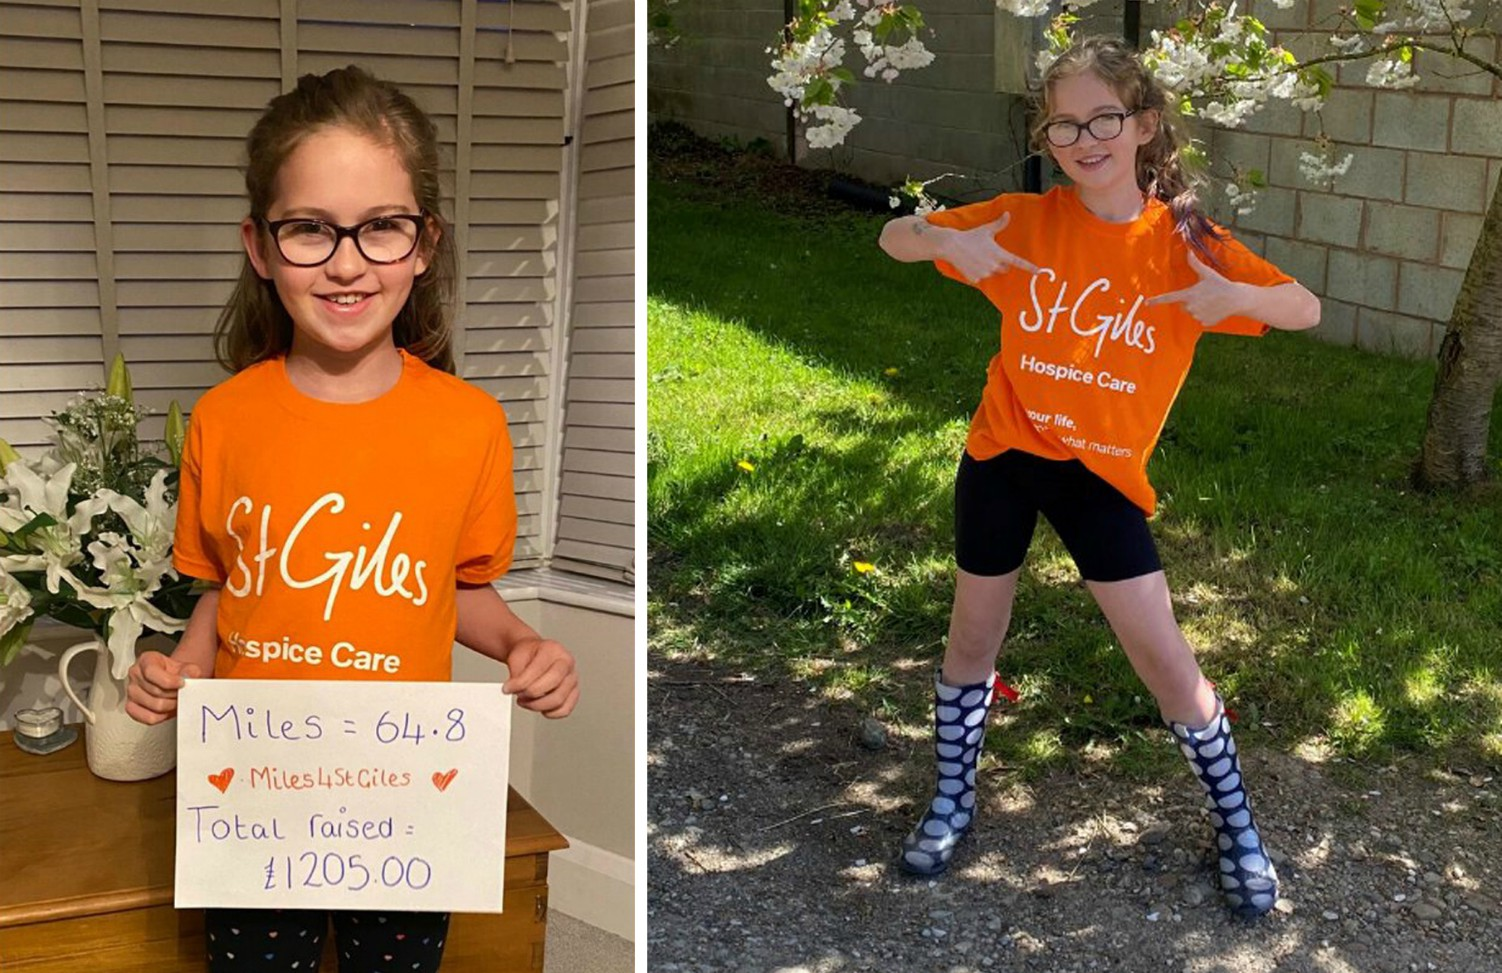 Call for kids to join Mini Miles 4 St Giles